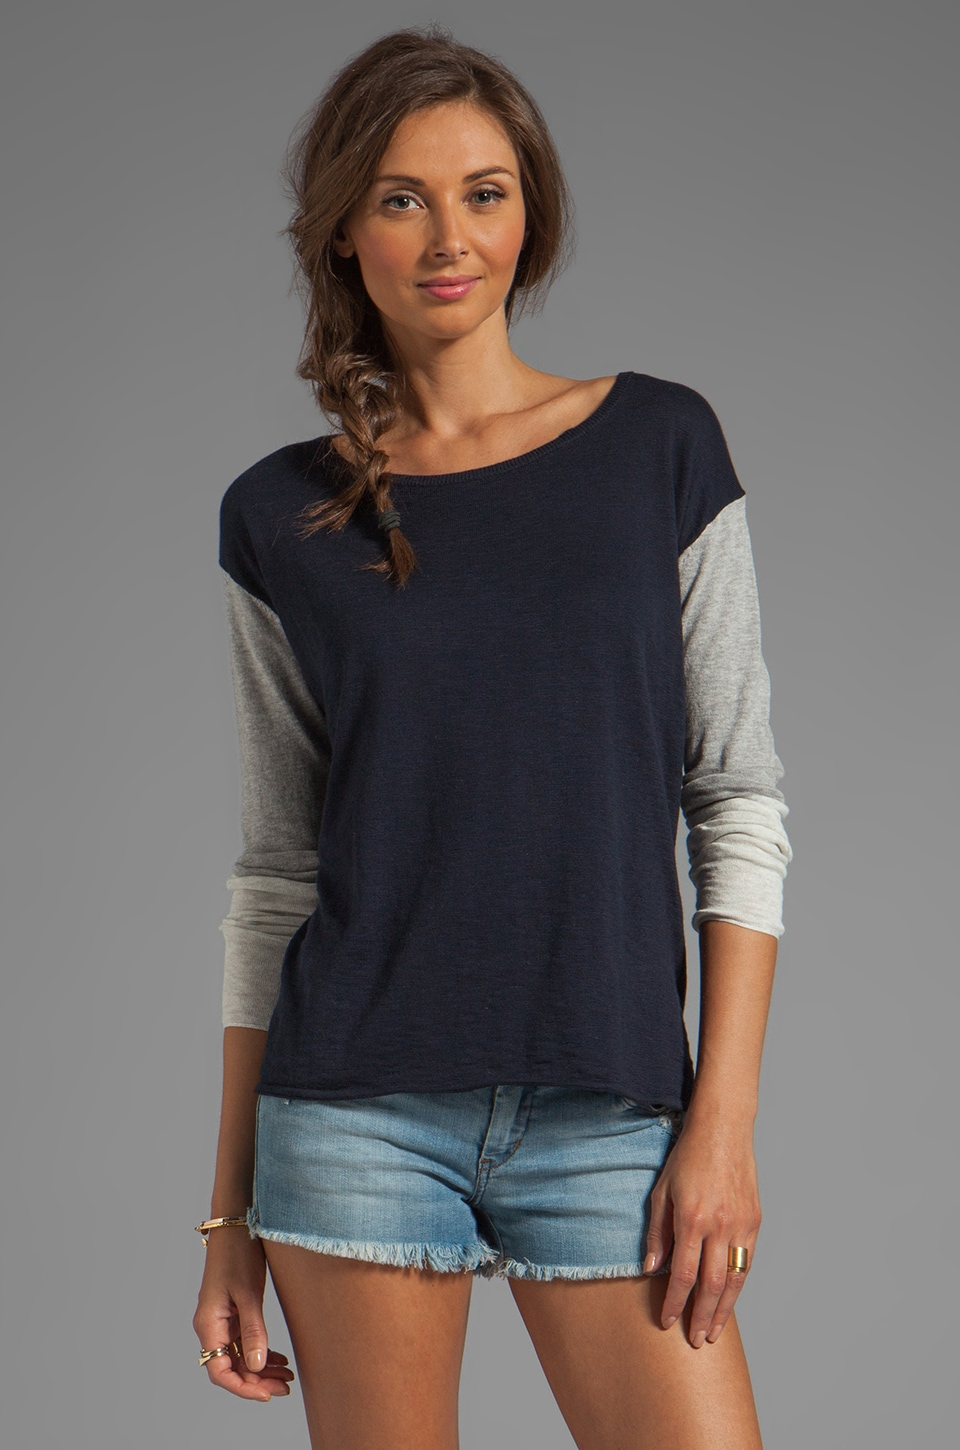 Vince Tri-Color Sweater in Heather Grey/Cloud and Coastal